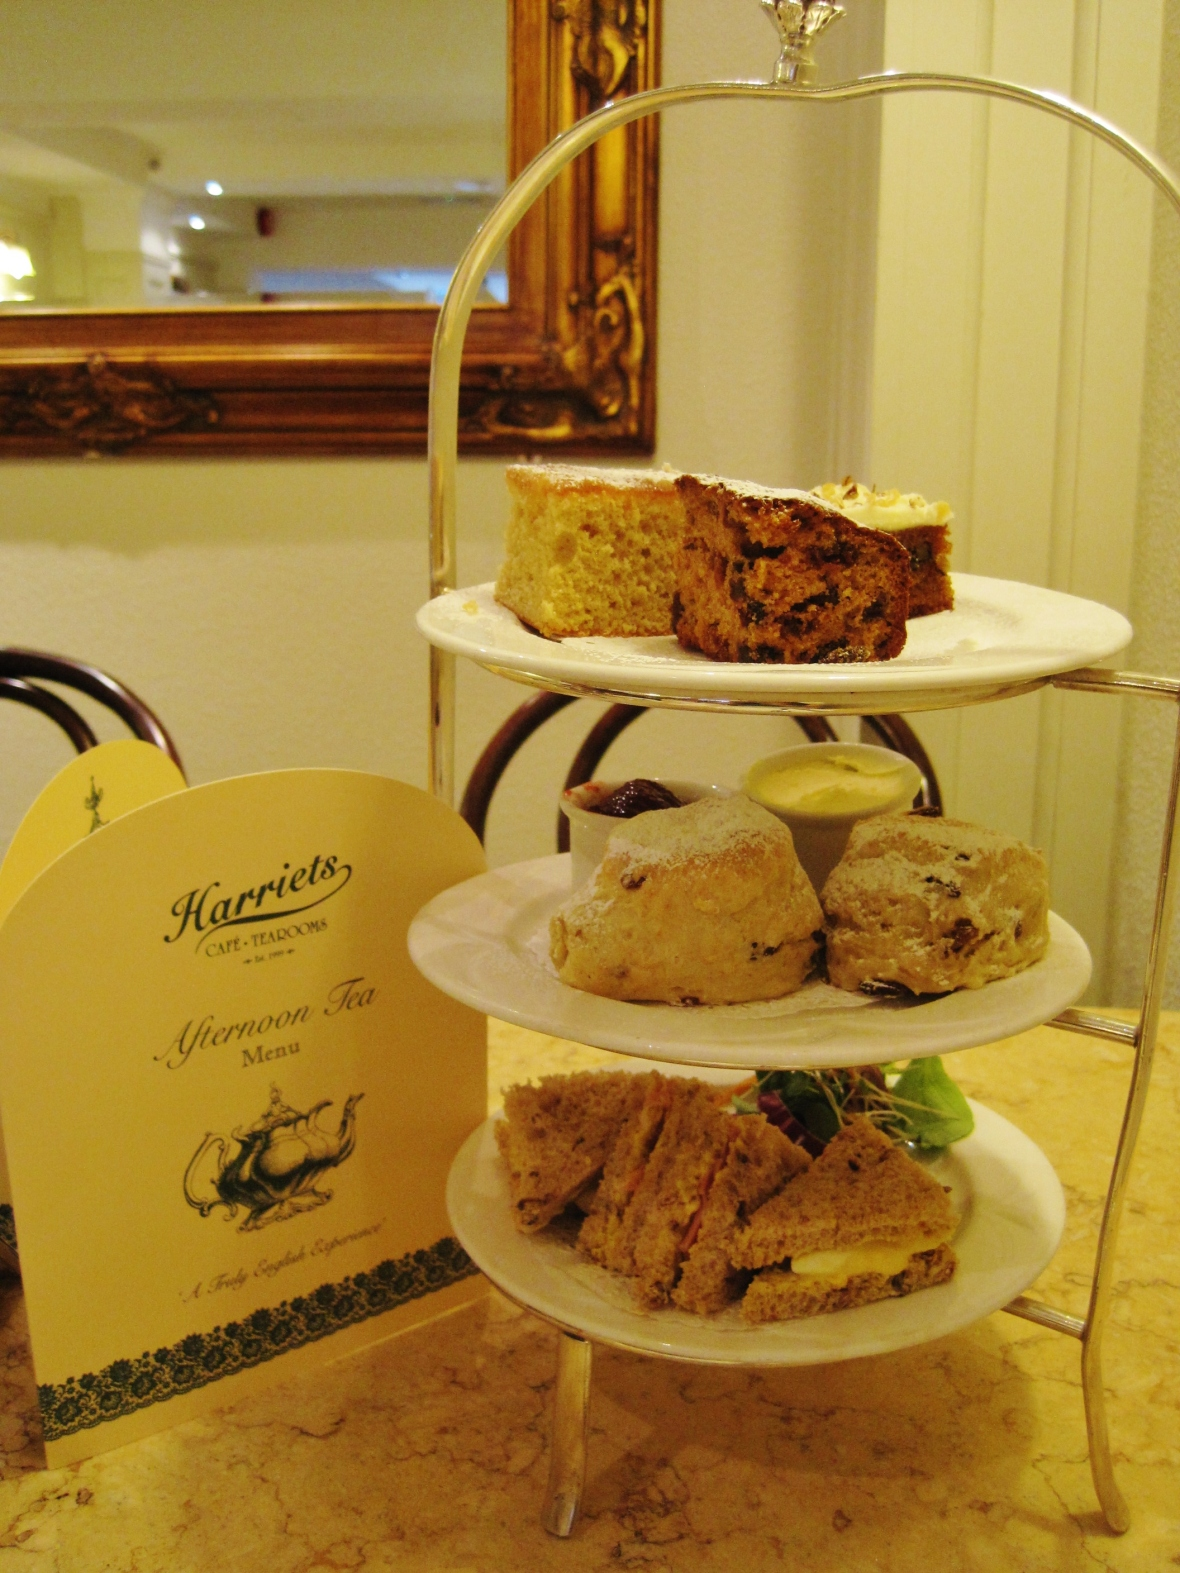 Afternoon Tea in Cambridge - Harriet's Tea Room